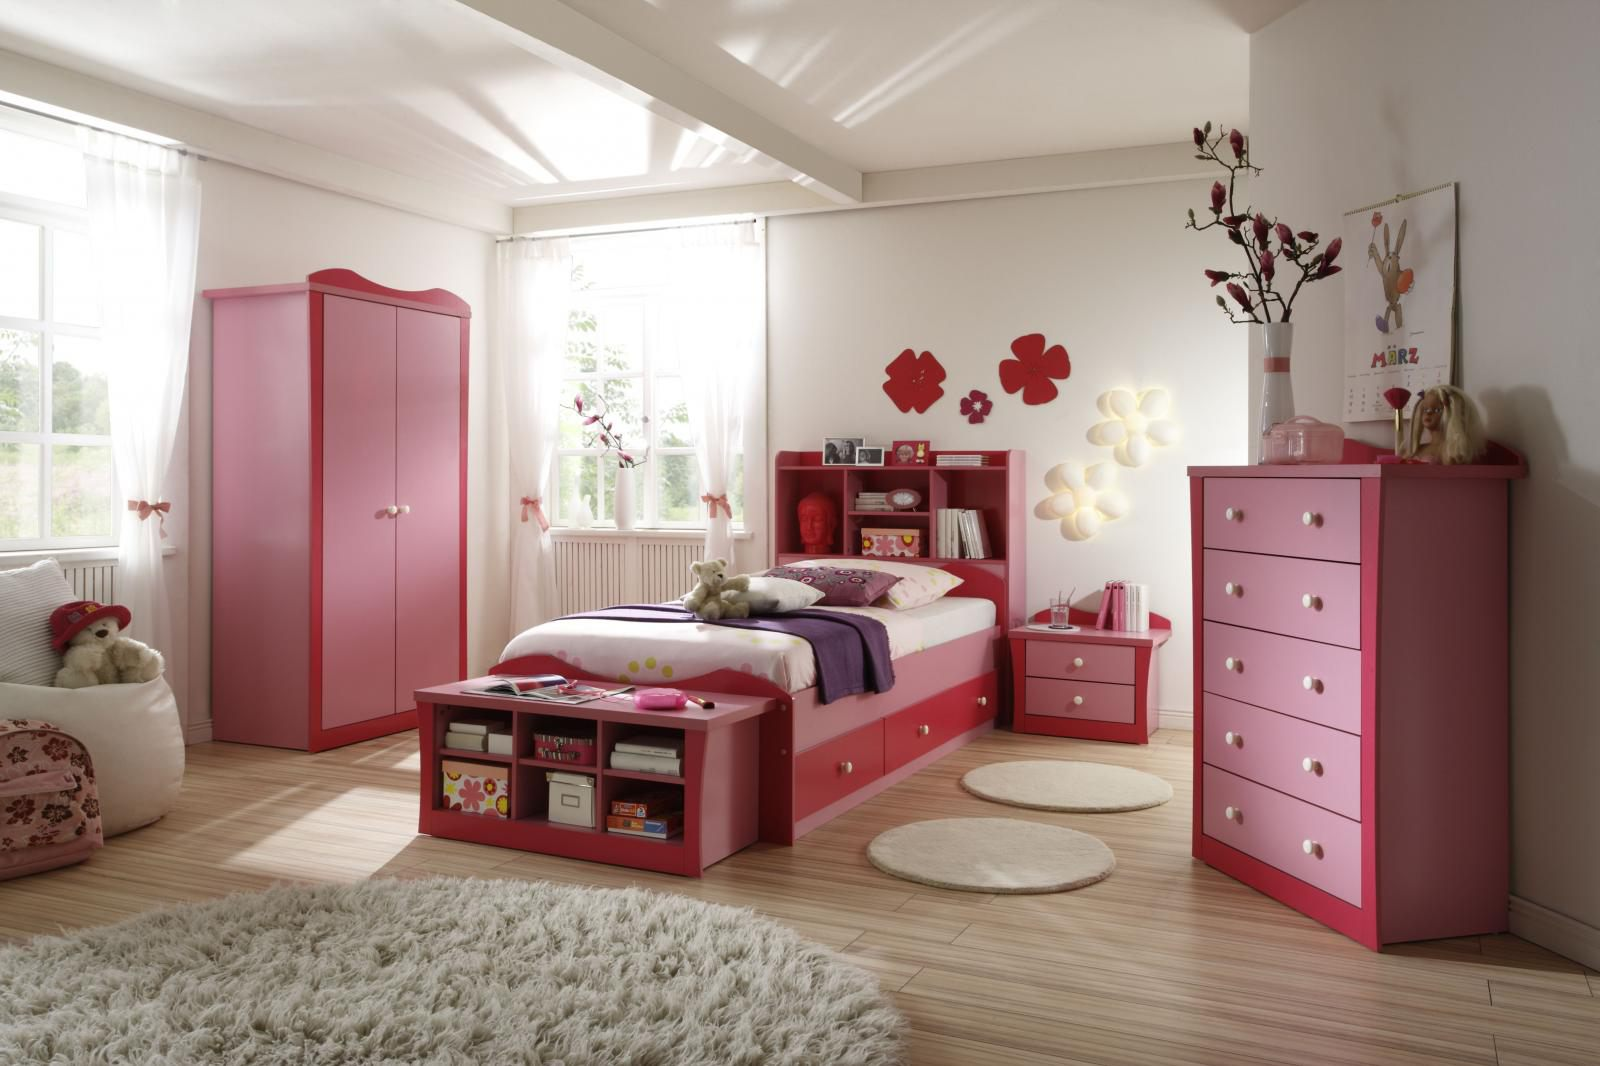 Simple Pink White Girl Room Bedroom Ideas For Girls